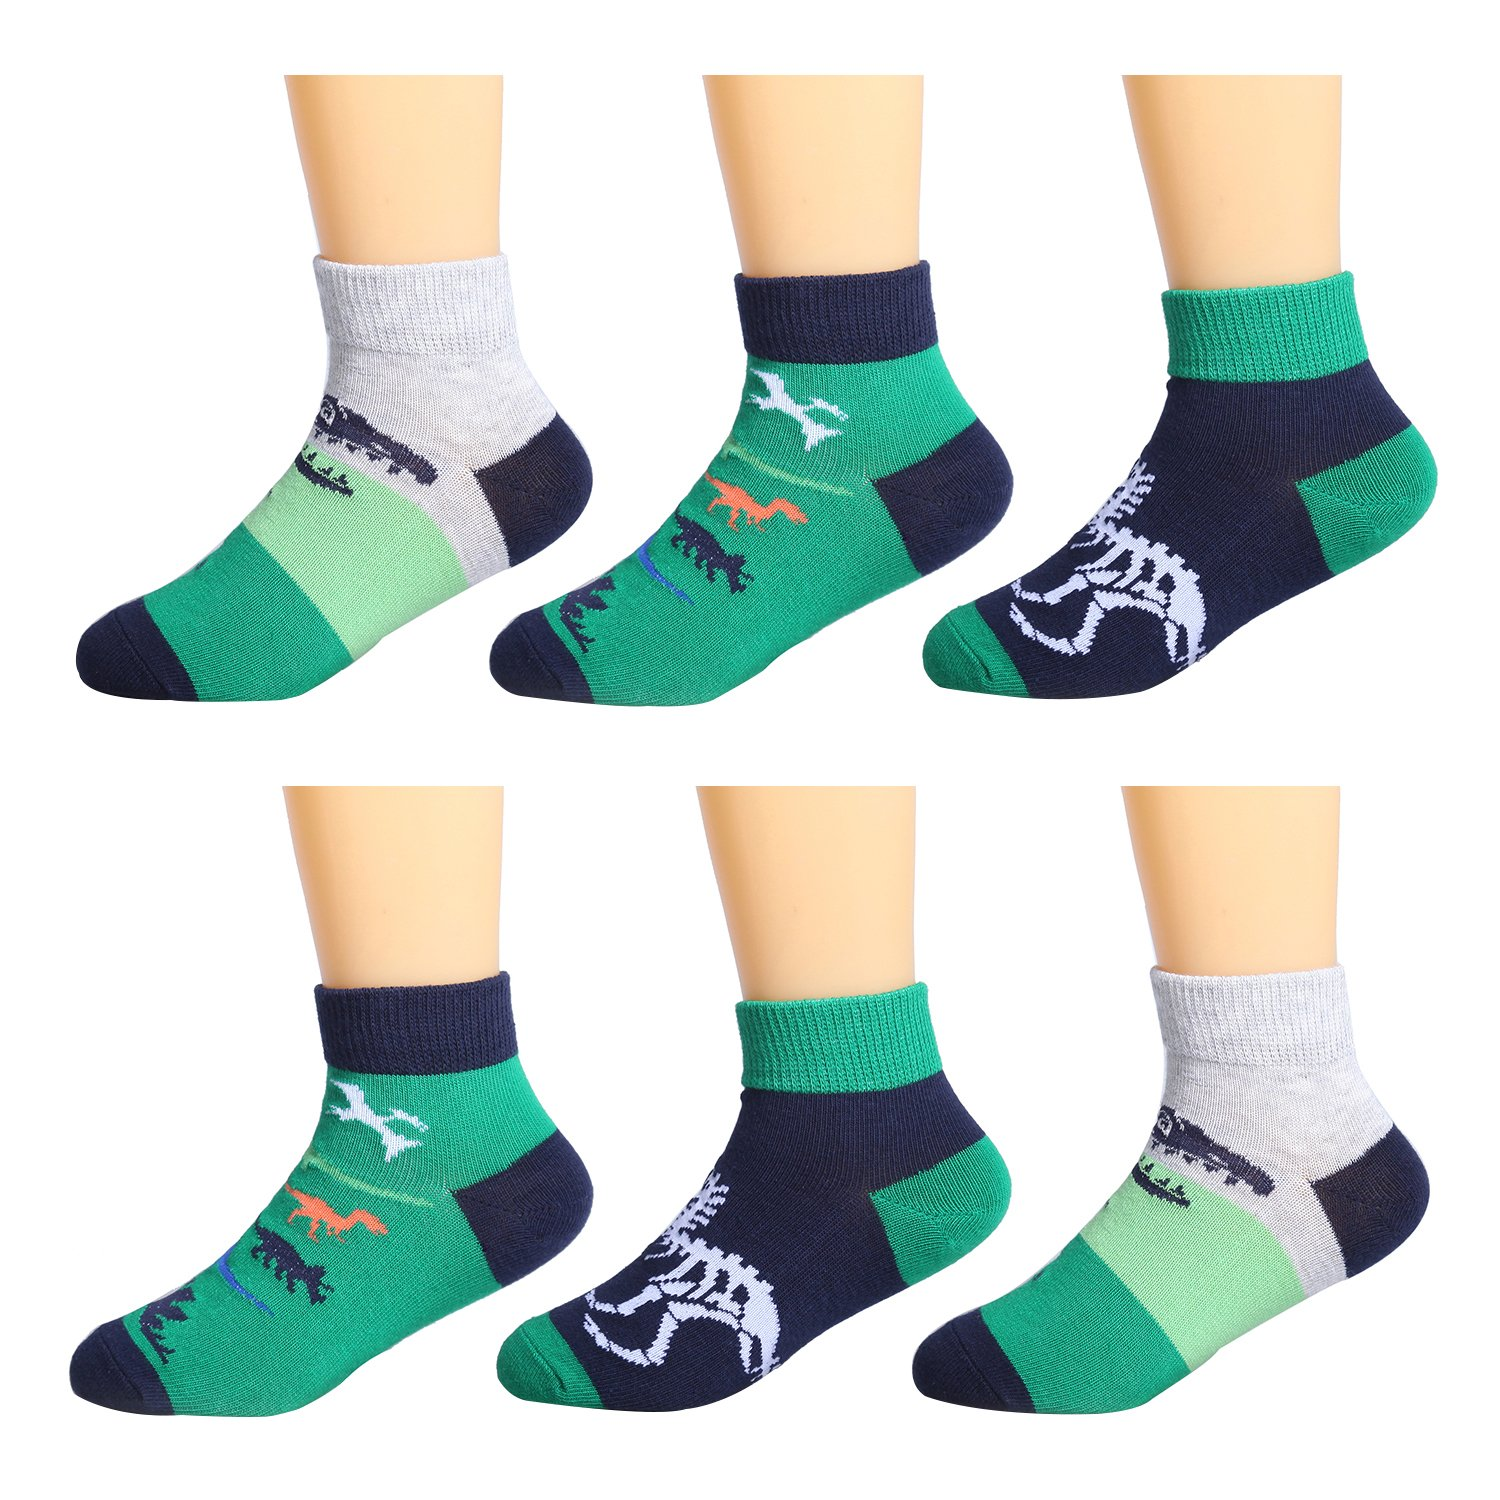 IMOZY Kids Athletic Sport Socks with Tab- Low Cut Ankle Socks- Dinosaurs Short Socks Pack for Toddler Little and Big Kids